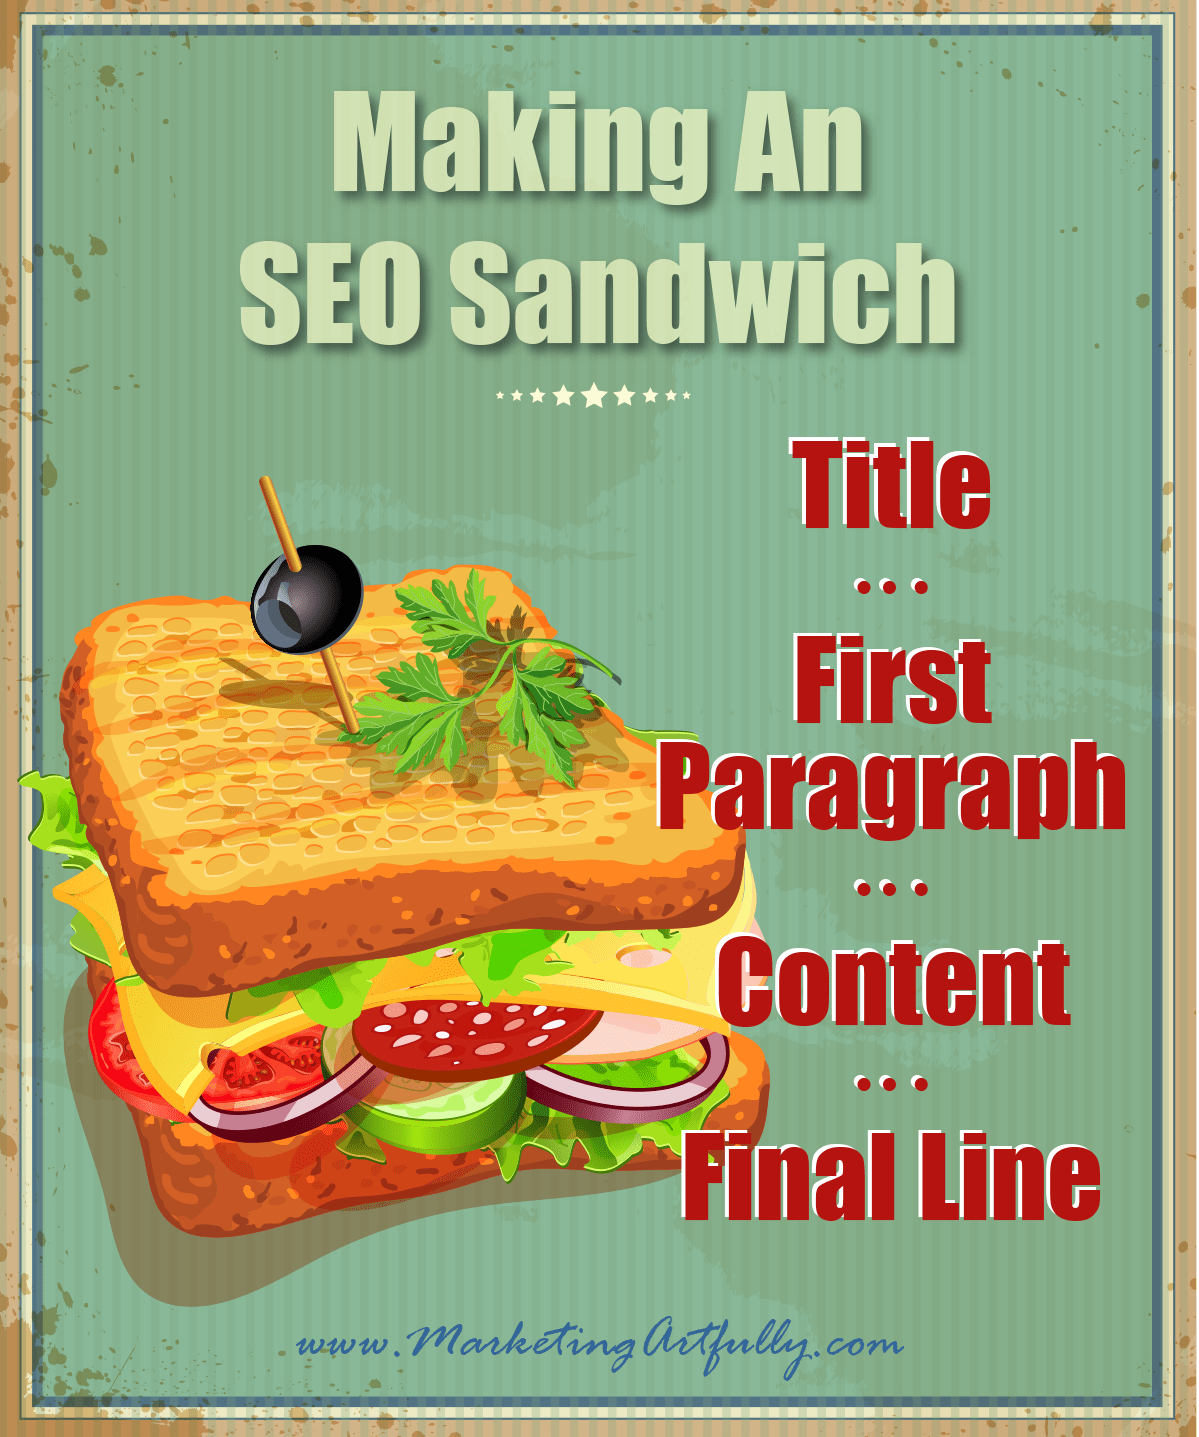 Making An SEO Sandwich